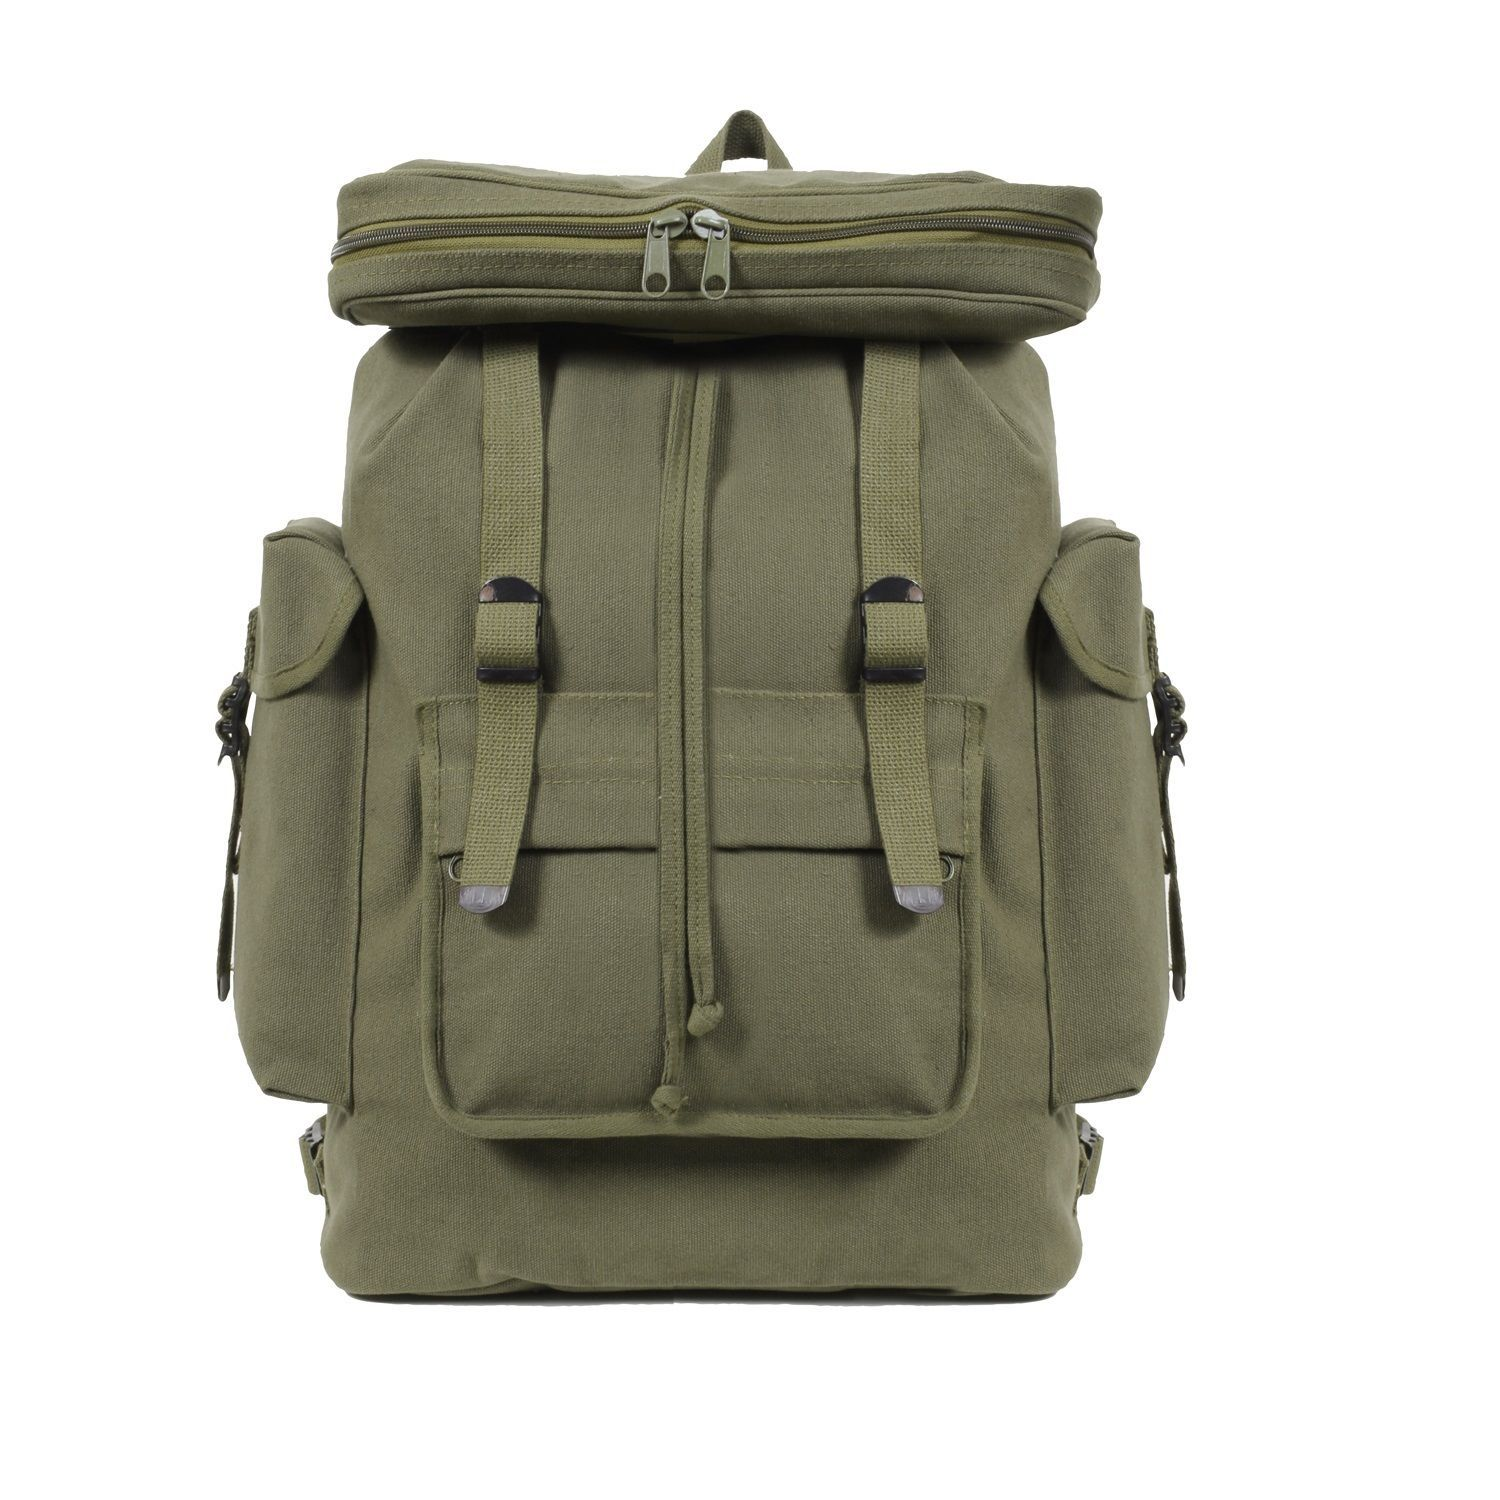 MILITARY OLIVE ARMY HEAVYWEIGHT  FIELD BAG BACKPACK